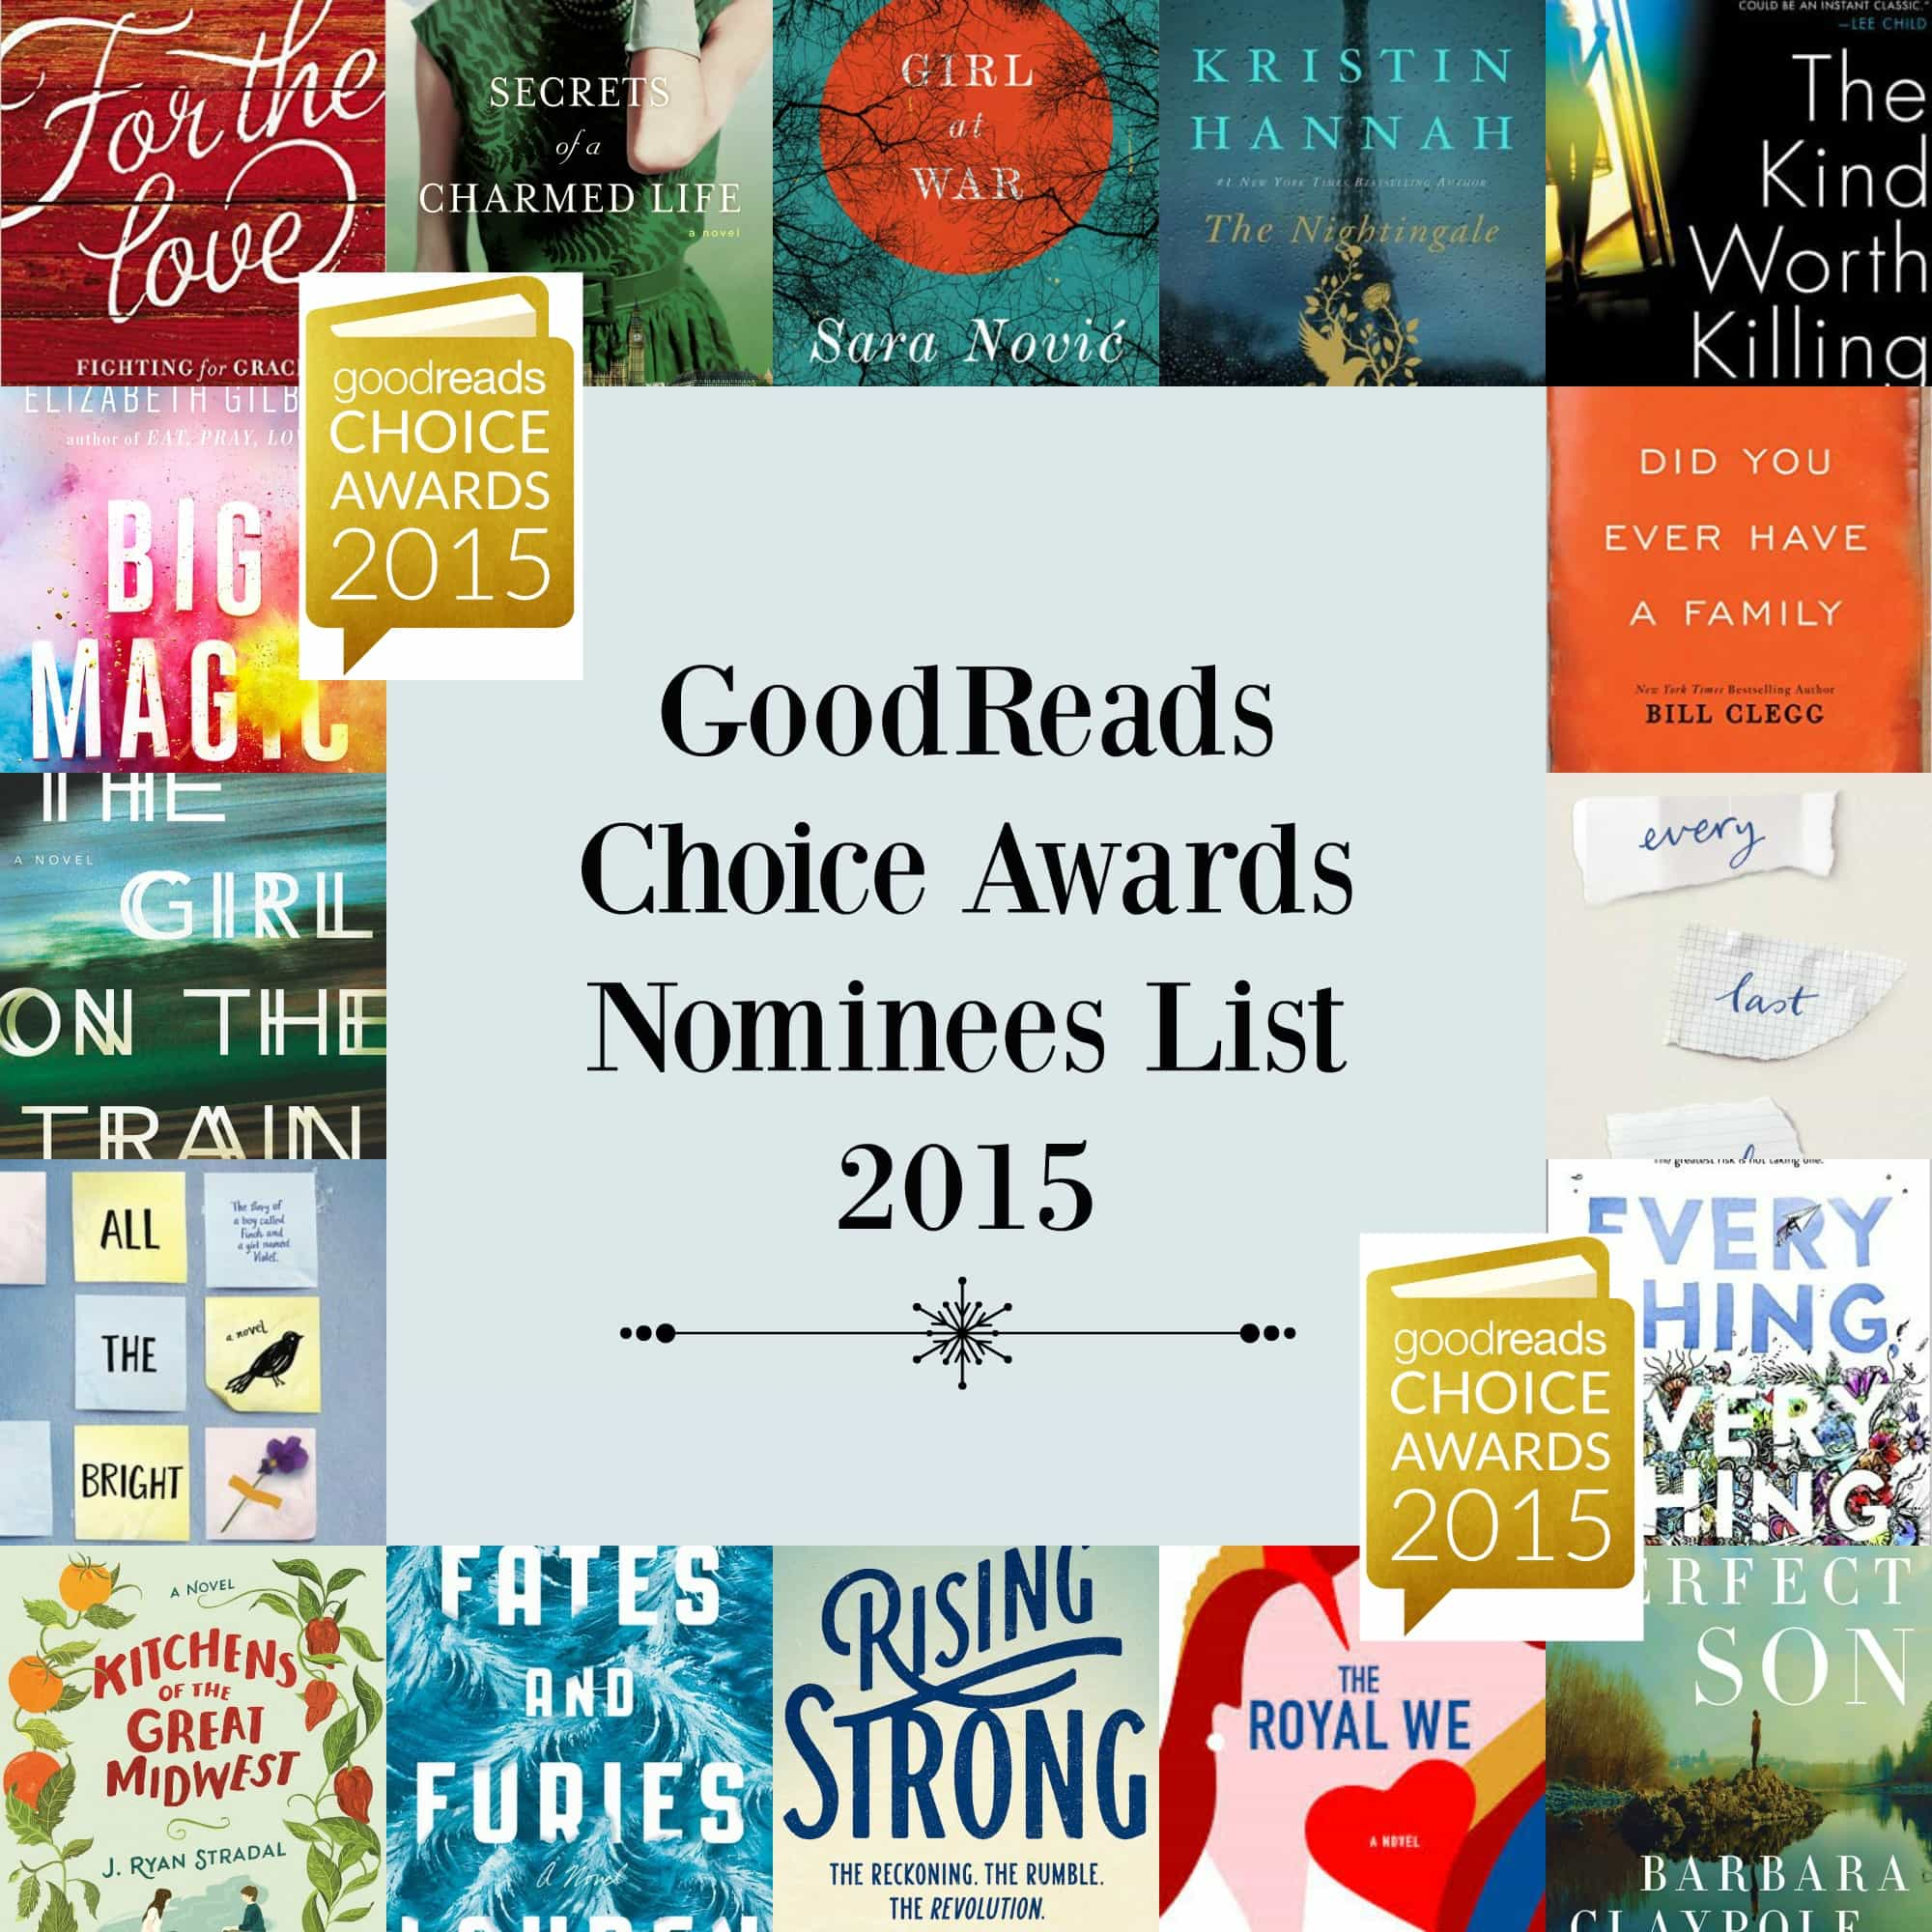 2015 GoodReads Choice Awards Nominees